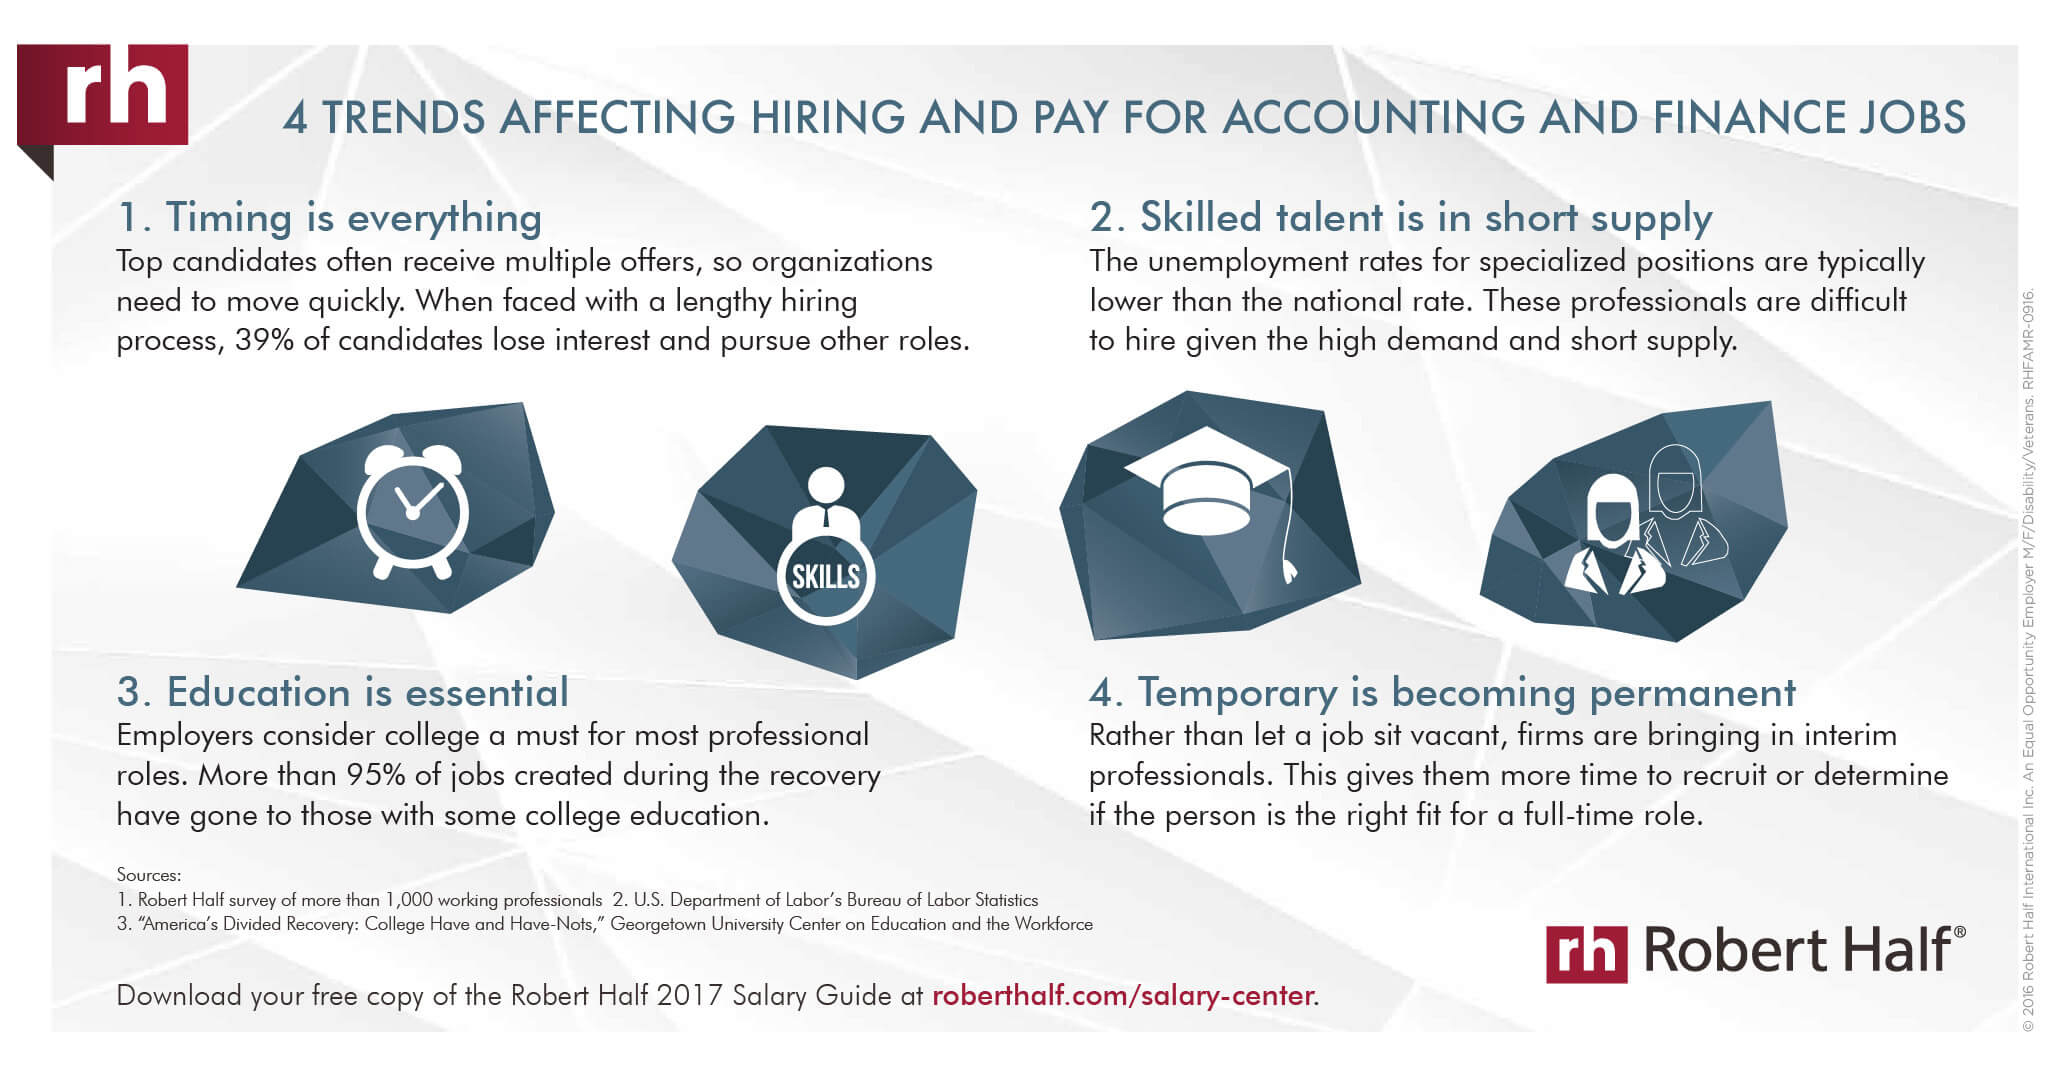 Trends Affecting Hiring, Pay for Accounting and Finance Jobs